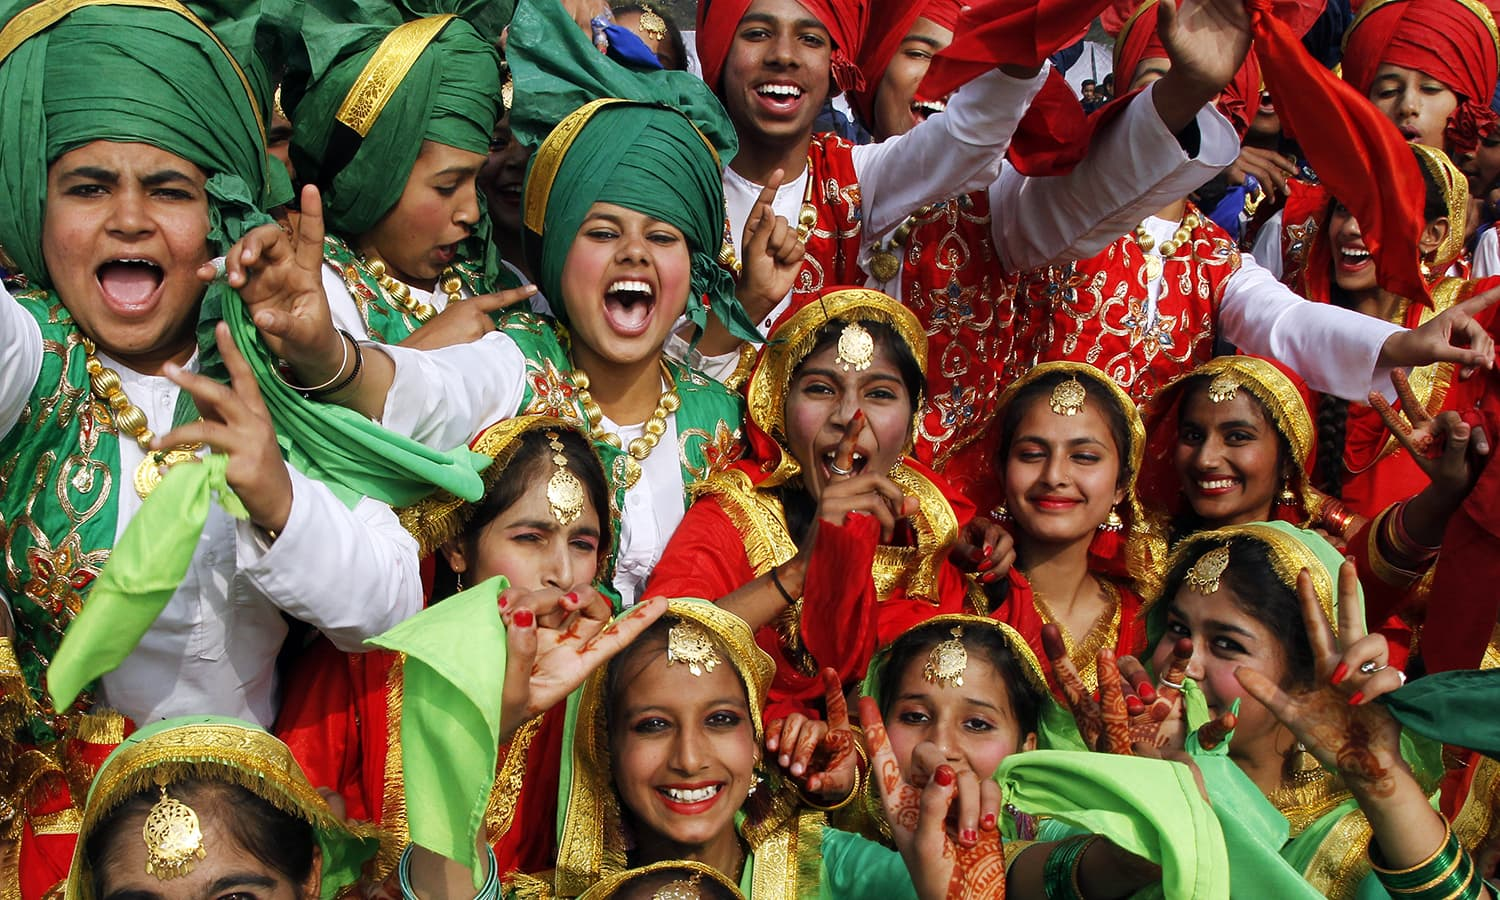 Schoolchildren wearing traditional attire cheer after performing at a cultural program during the Republic Day celebrations in Chandigarh, India. ─ Reuters